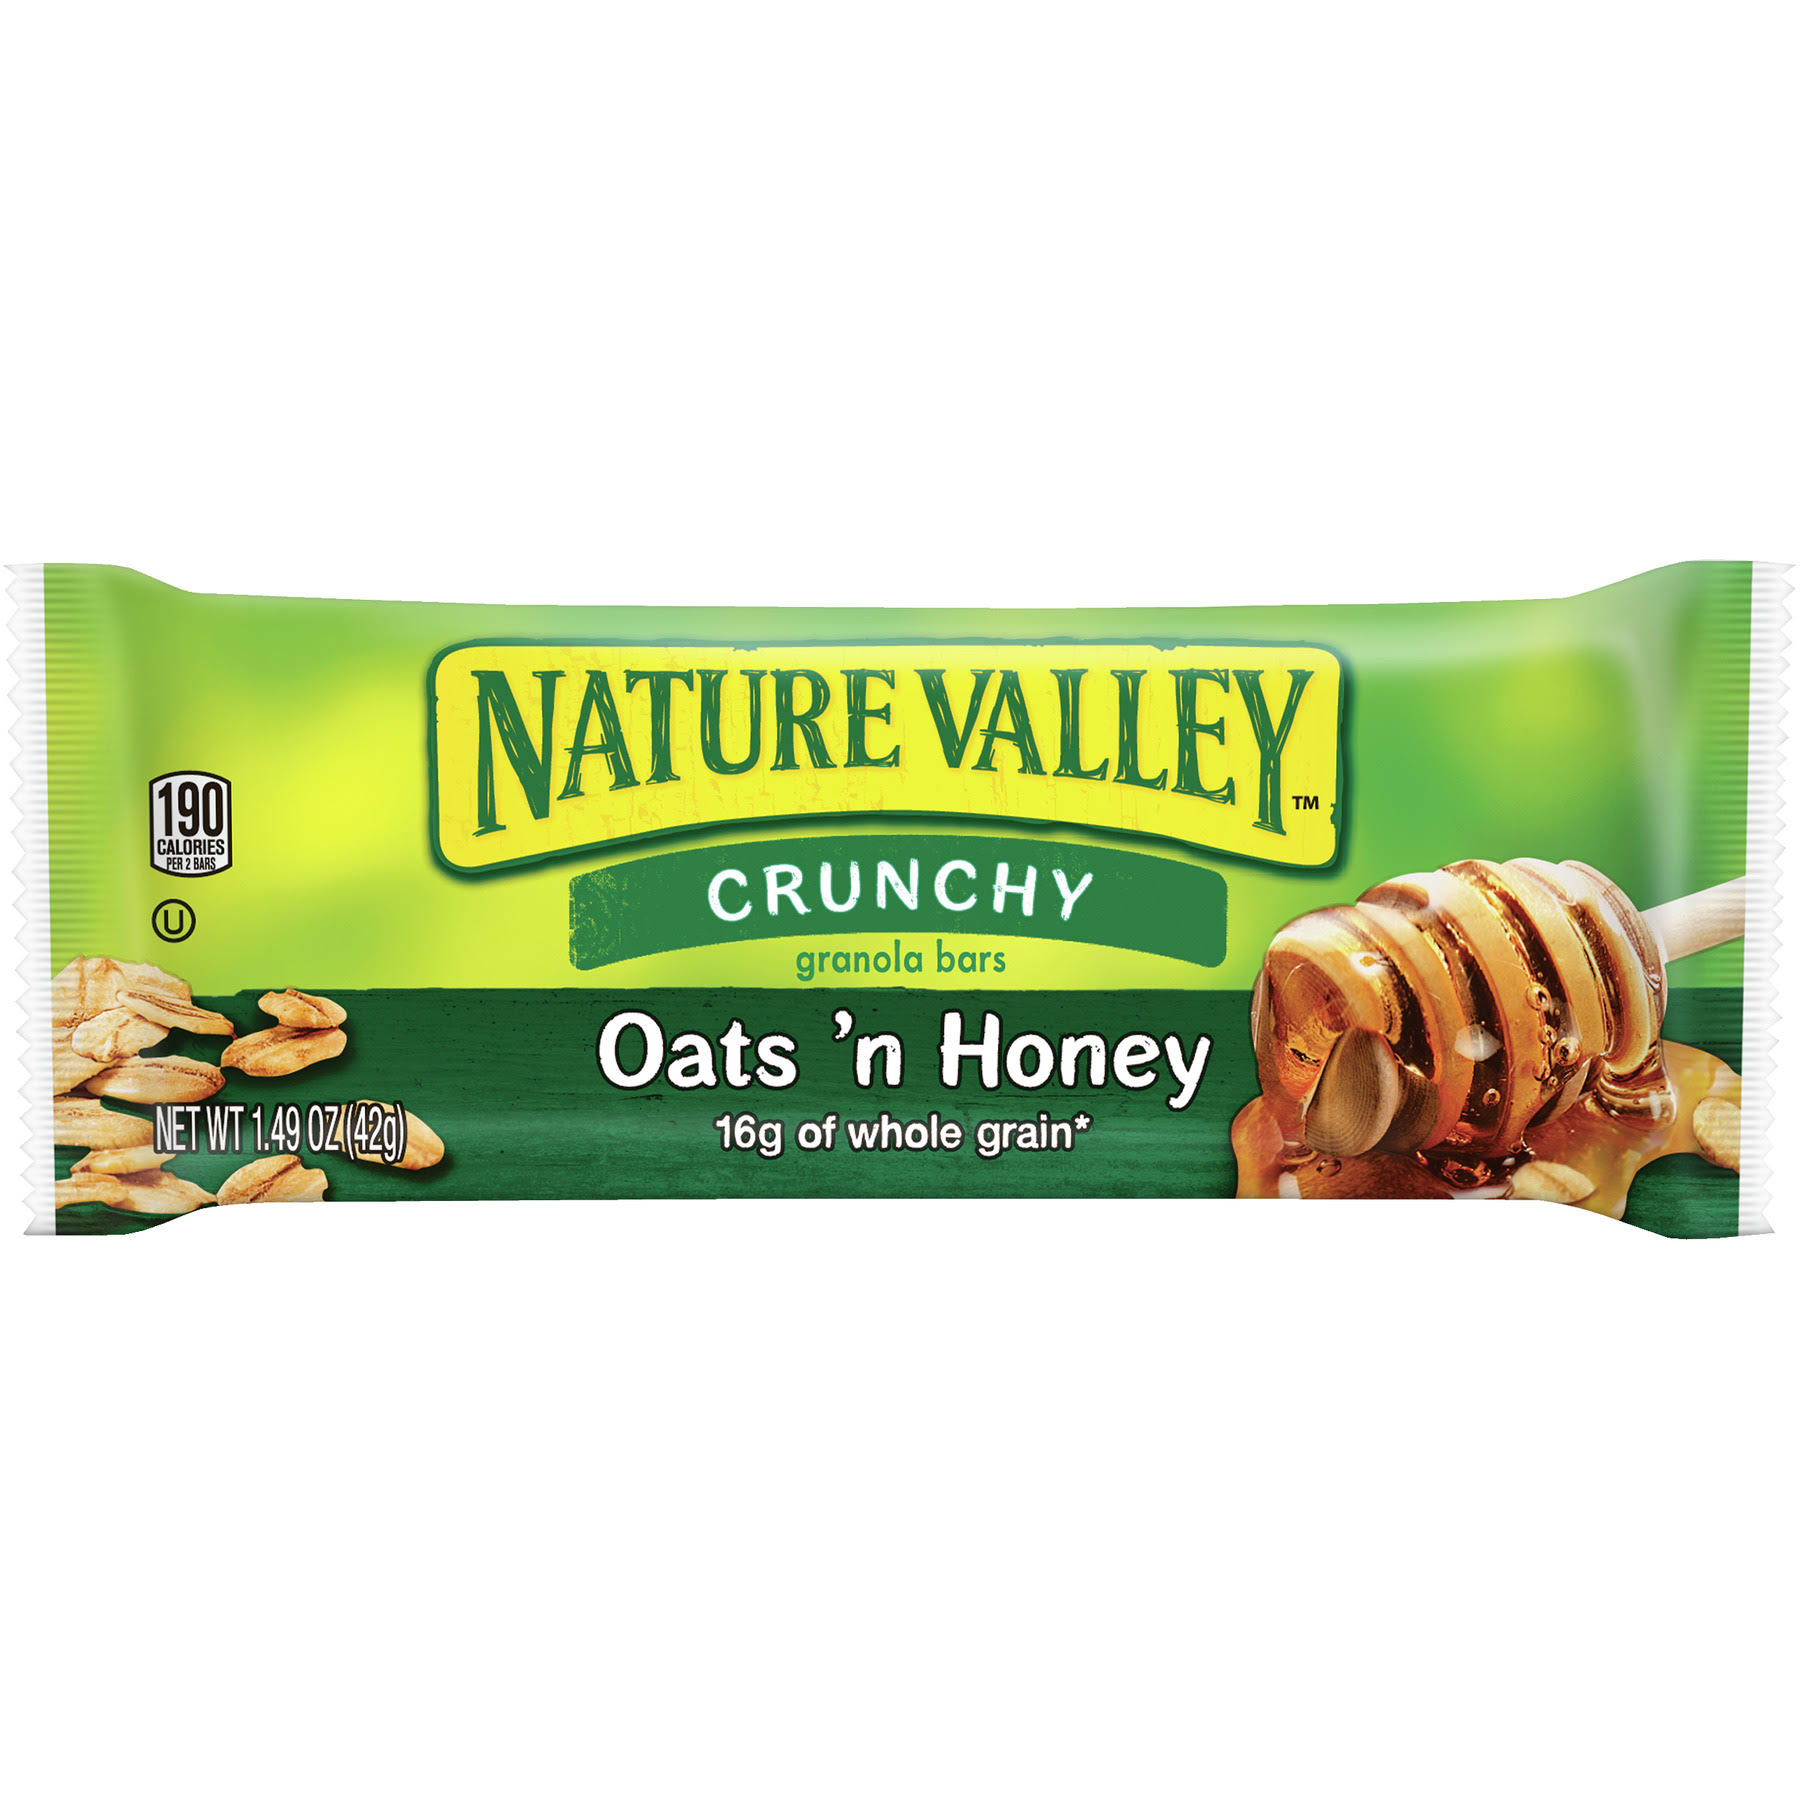 Nature Valley Crunchy Granola Bars Oats 'N Honey - 42g